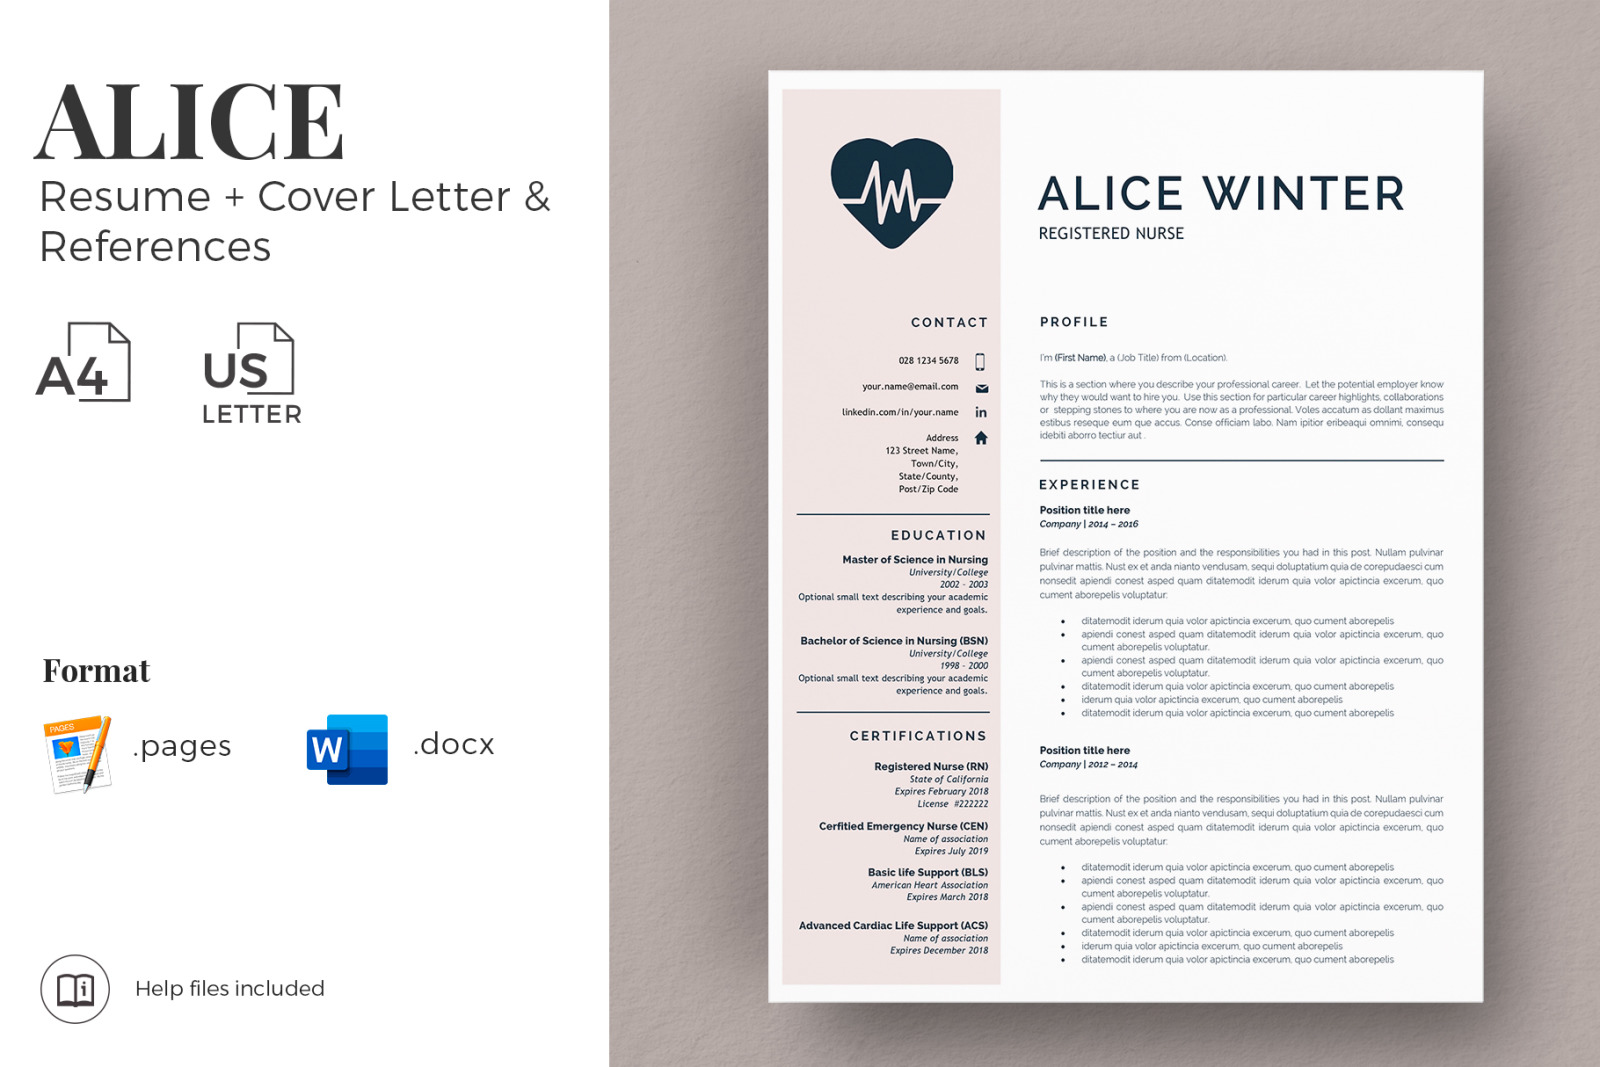 Rn Nurse Resume Template Registered Nurse Resume Cover Letter And References Nursing Resume Cv In Resume Templates On Yellow Images Creative Store